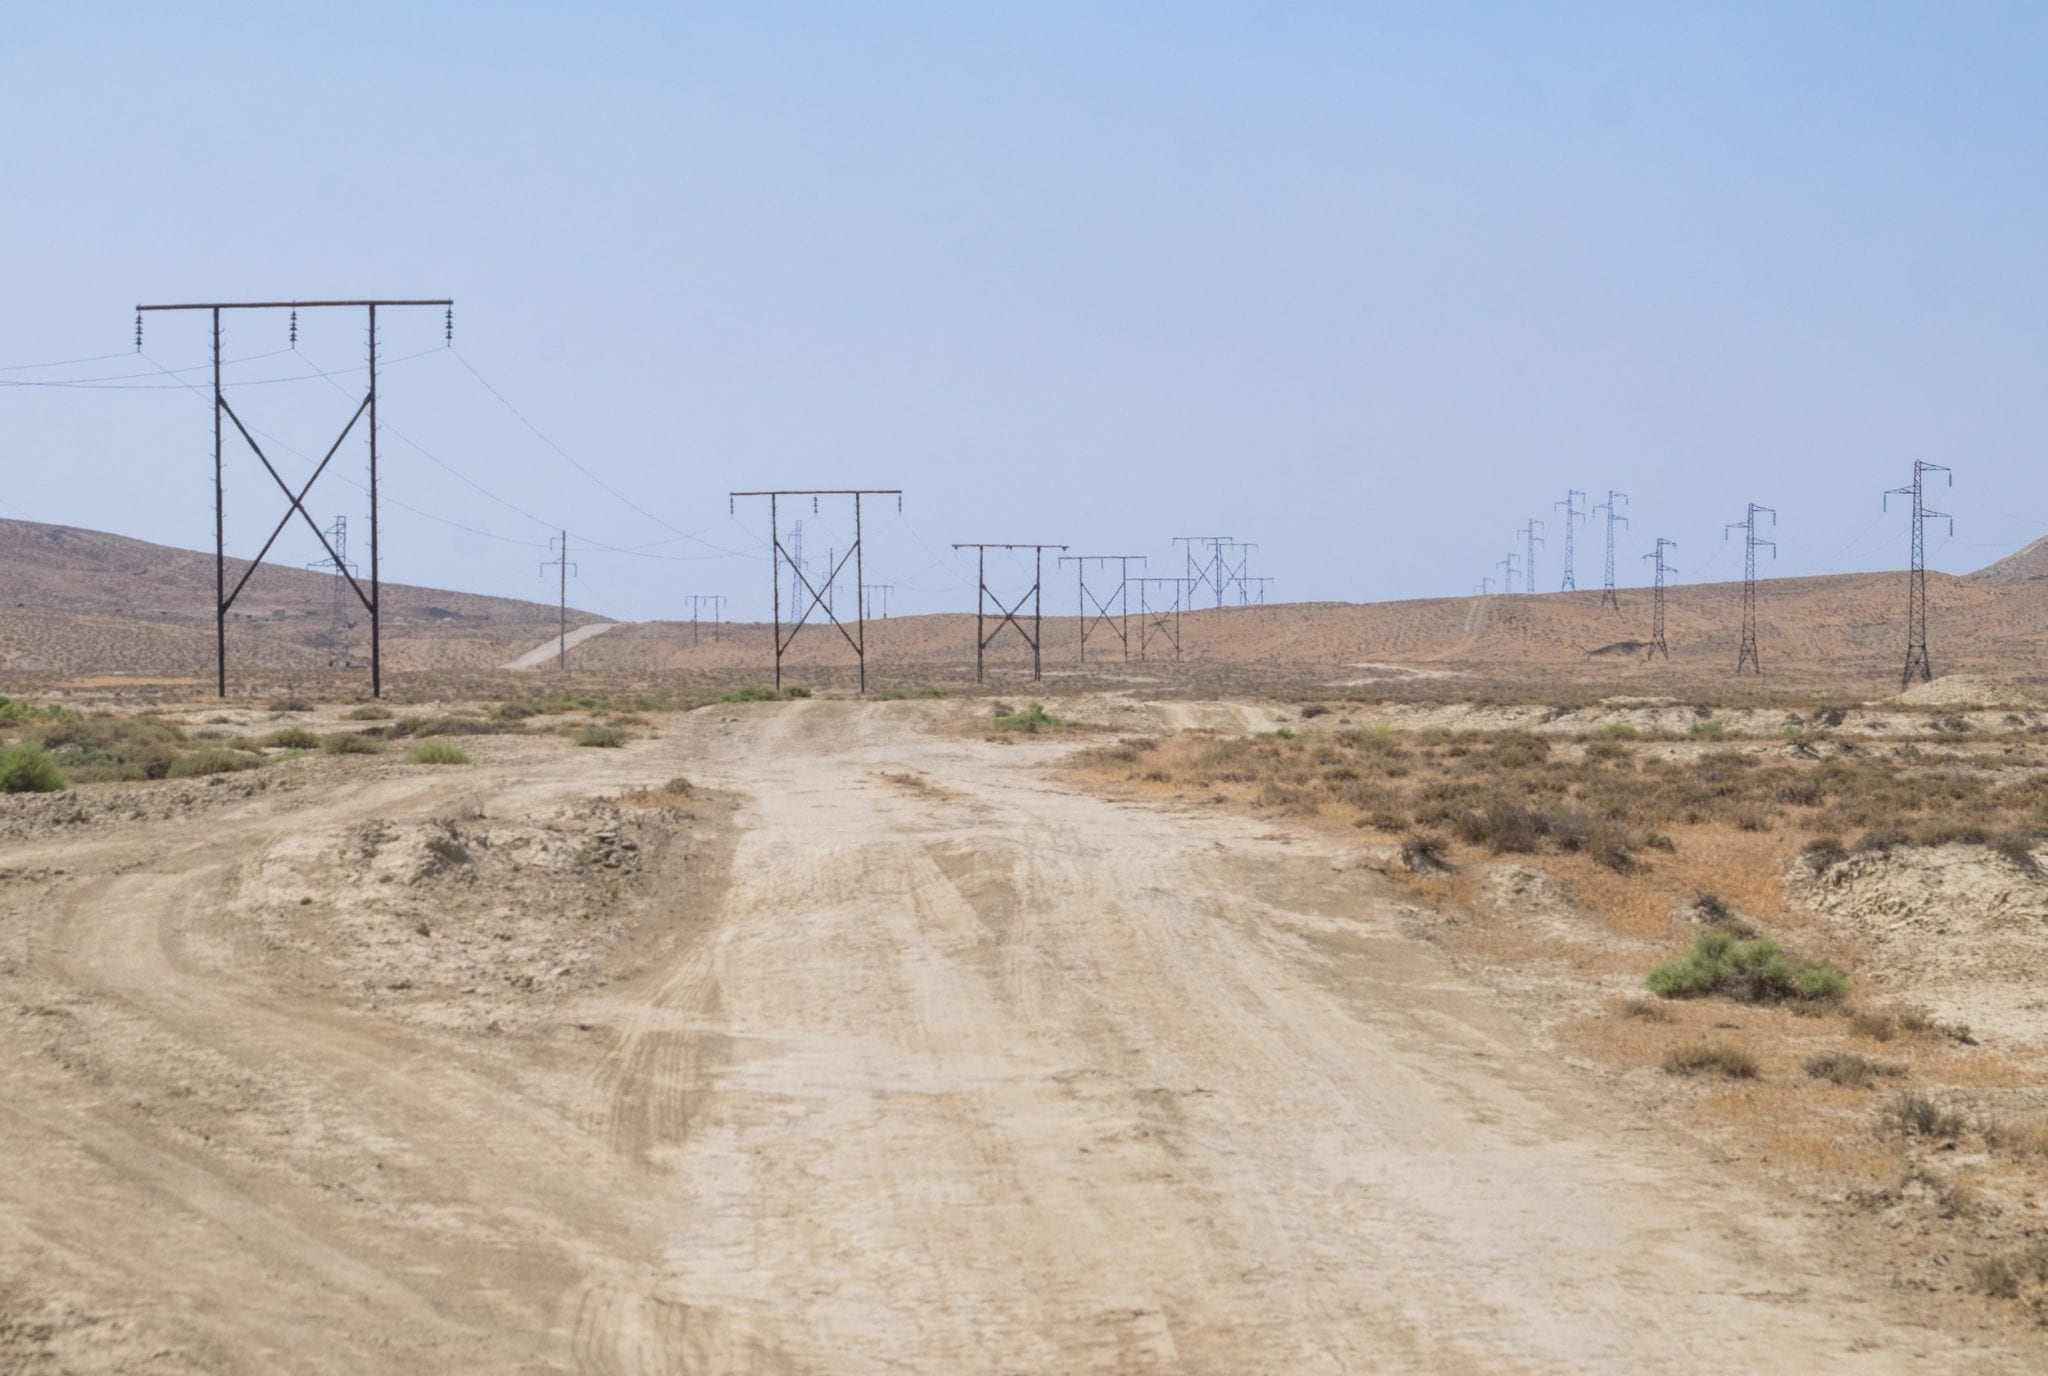 A rough desert landscape with telephone poles running across the sand.